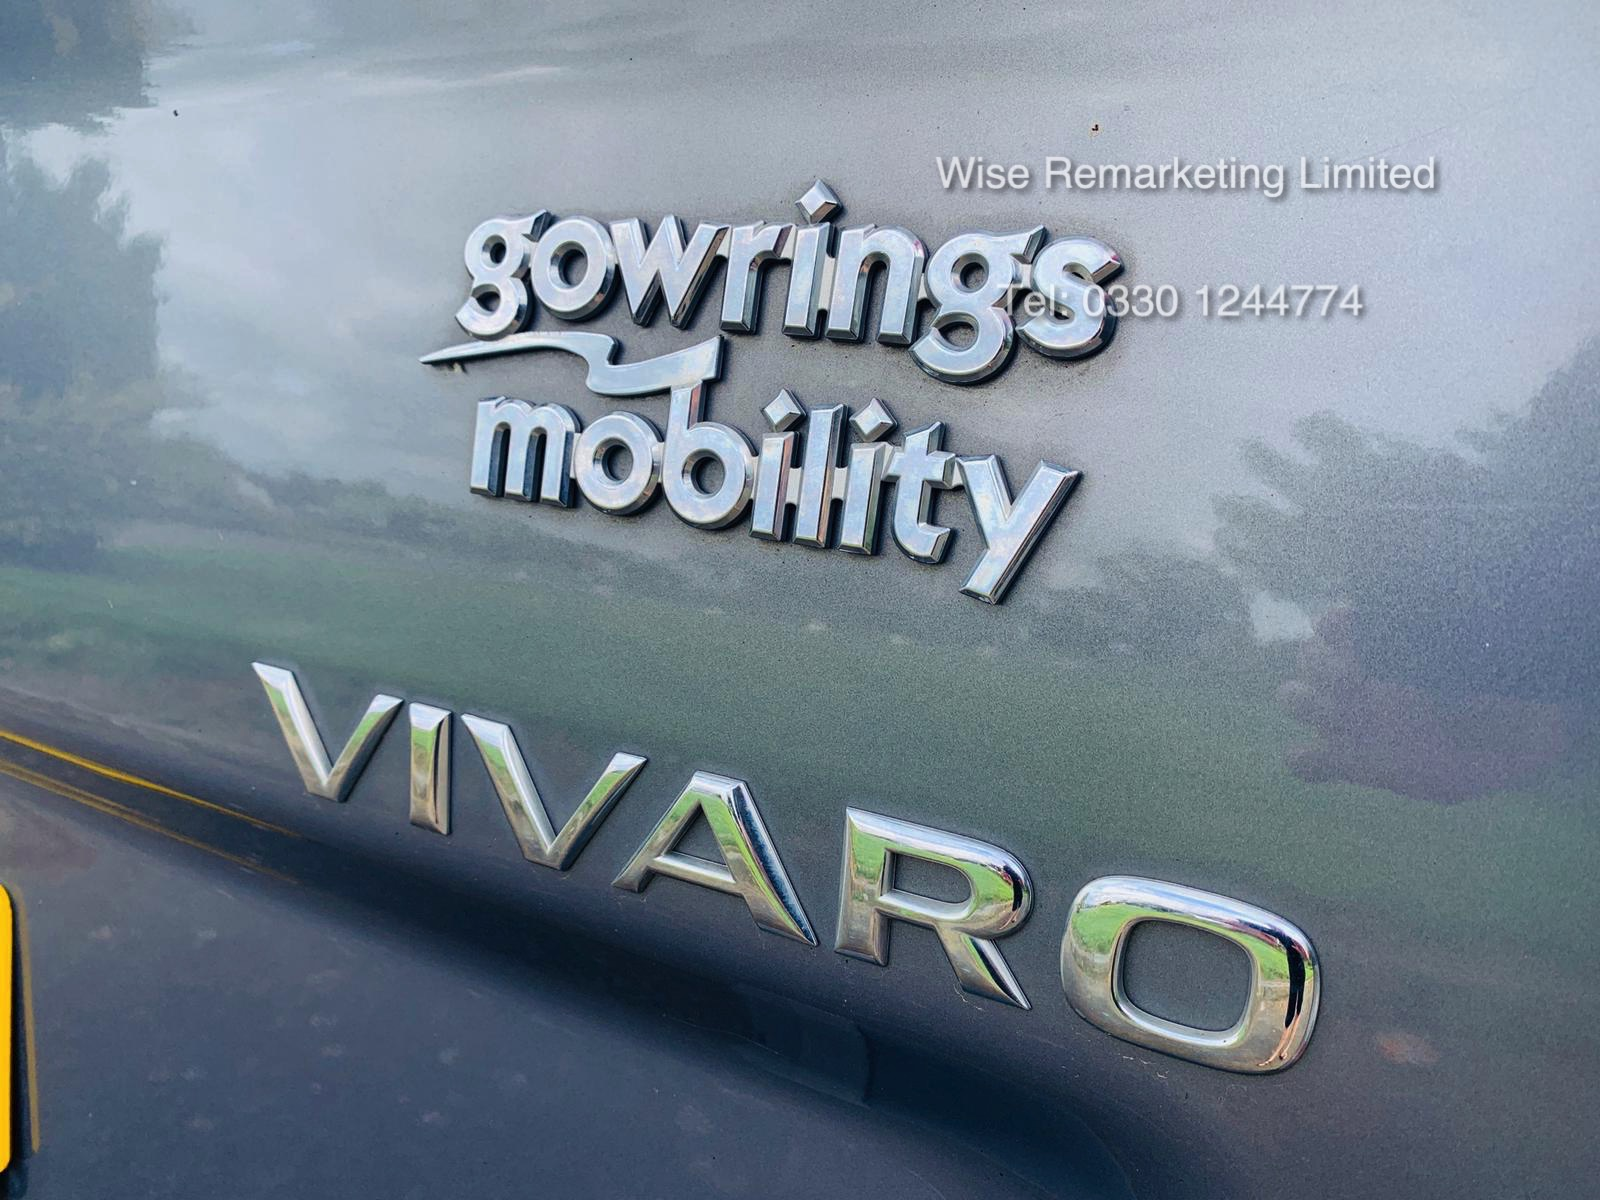 Vauxhall Vivaro 2.0 CDTI 2900 Minibus - 2014 Model - Wheel Chair Access -1 Owner From New -History - Image 12 of 21